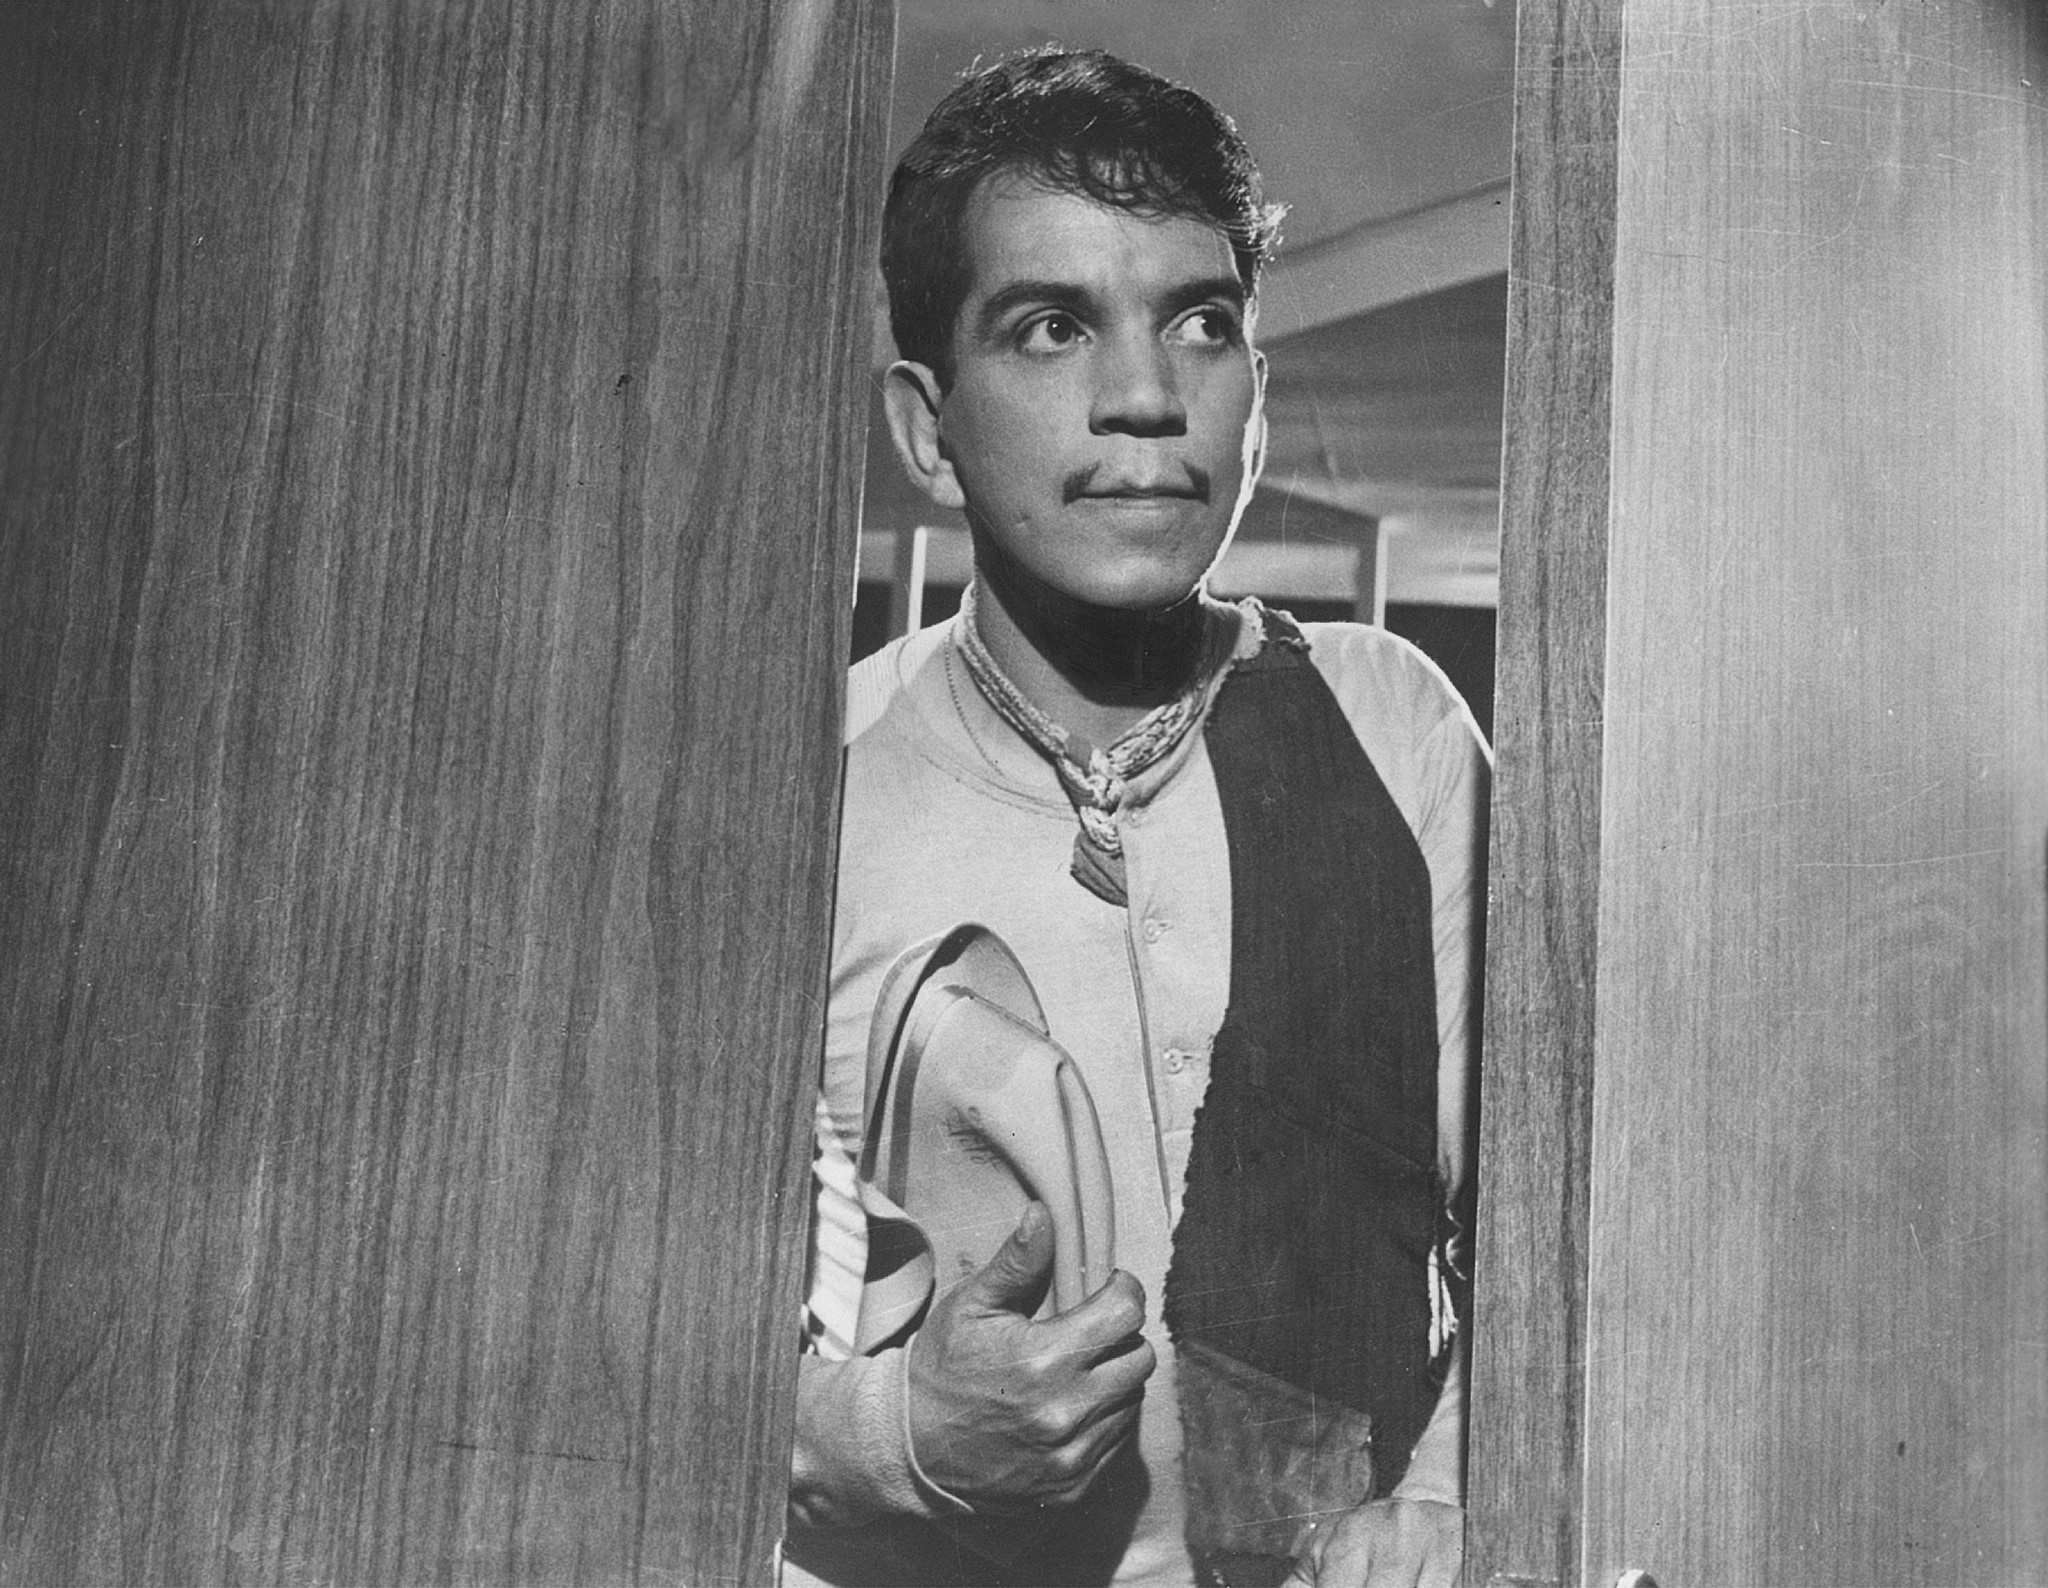 From the Archives: Cantinflas, Latin America's Beloved Comic Actor, Dies - LA Times